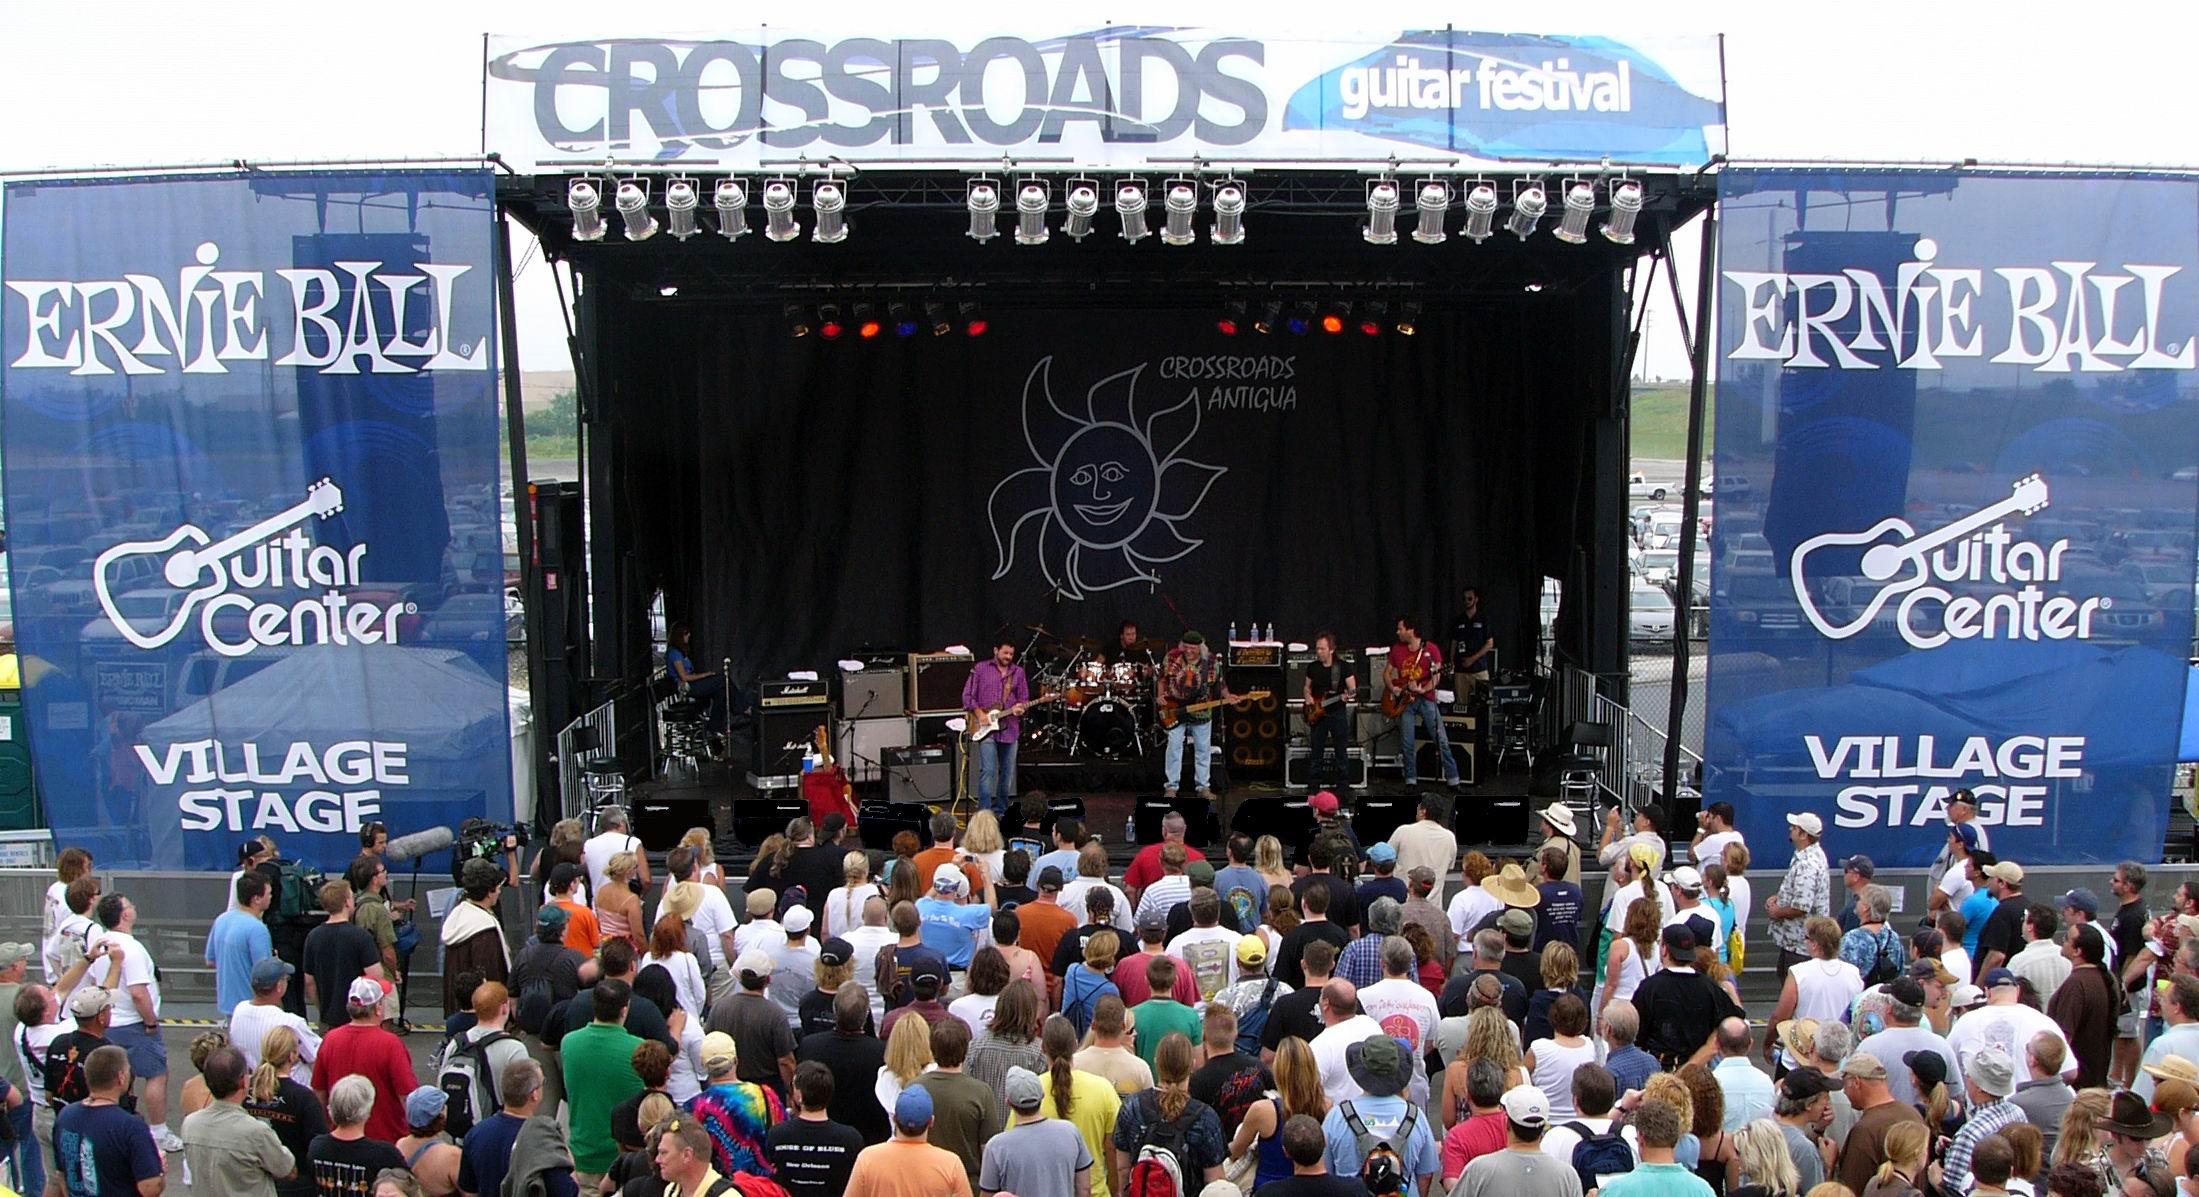 Intellasound Productions-Crossroads Festival - 2007